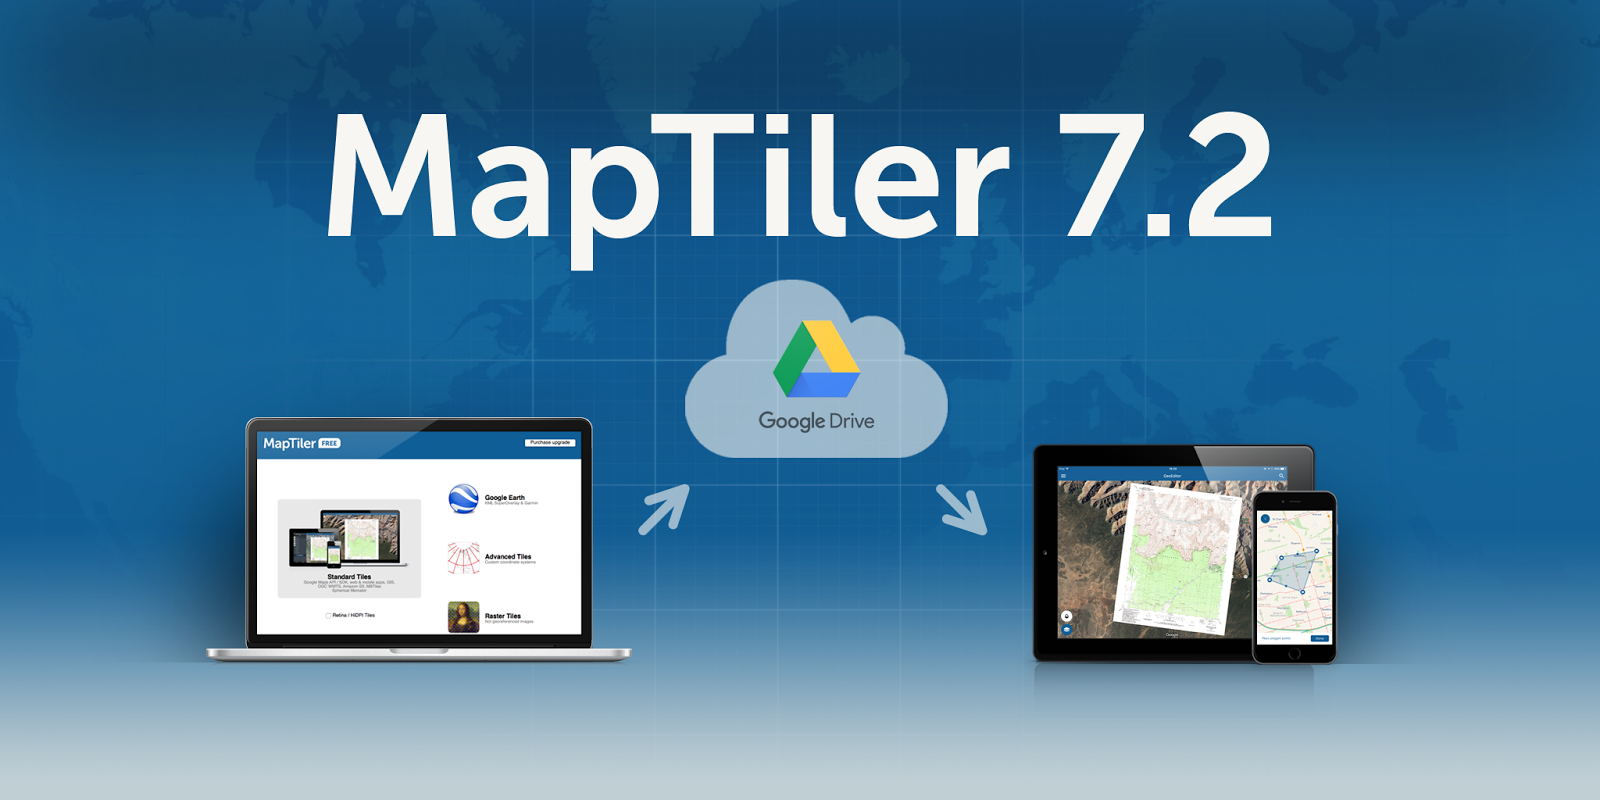 MapTiler 7.2: Mobile apps via Google Drive image